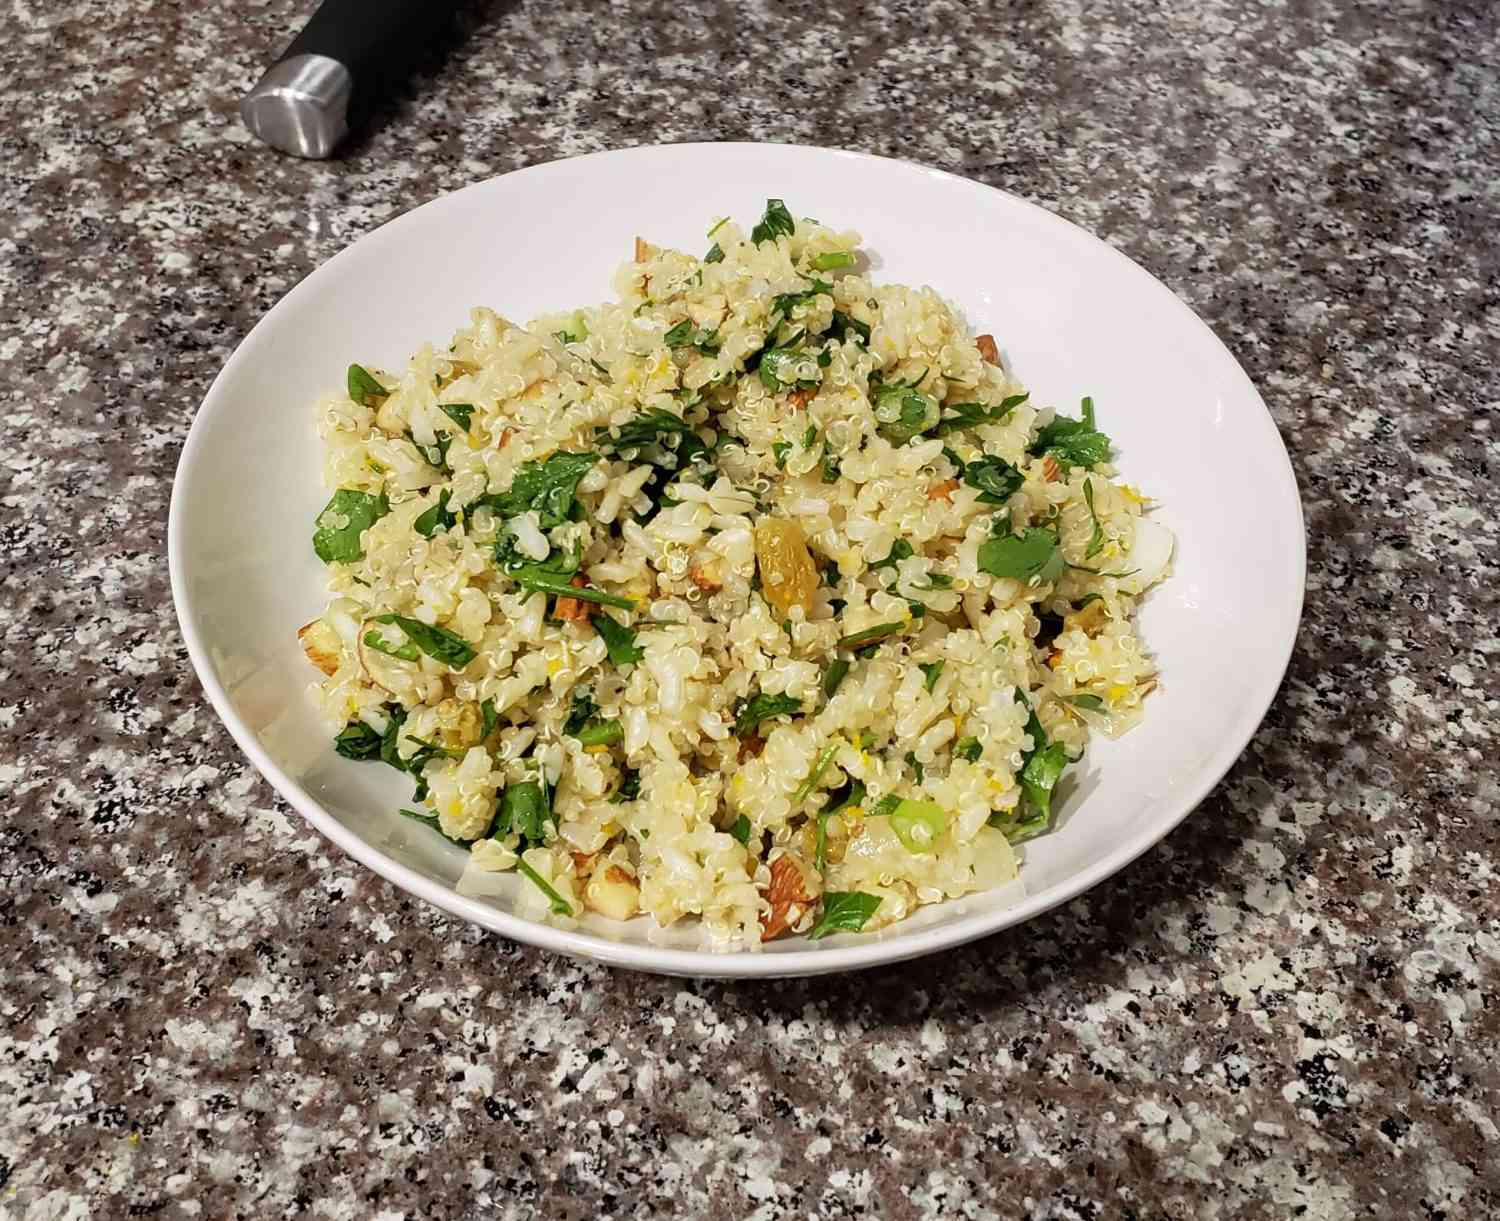 Bowl of rice and quinoa salad on a counter